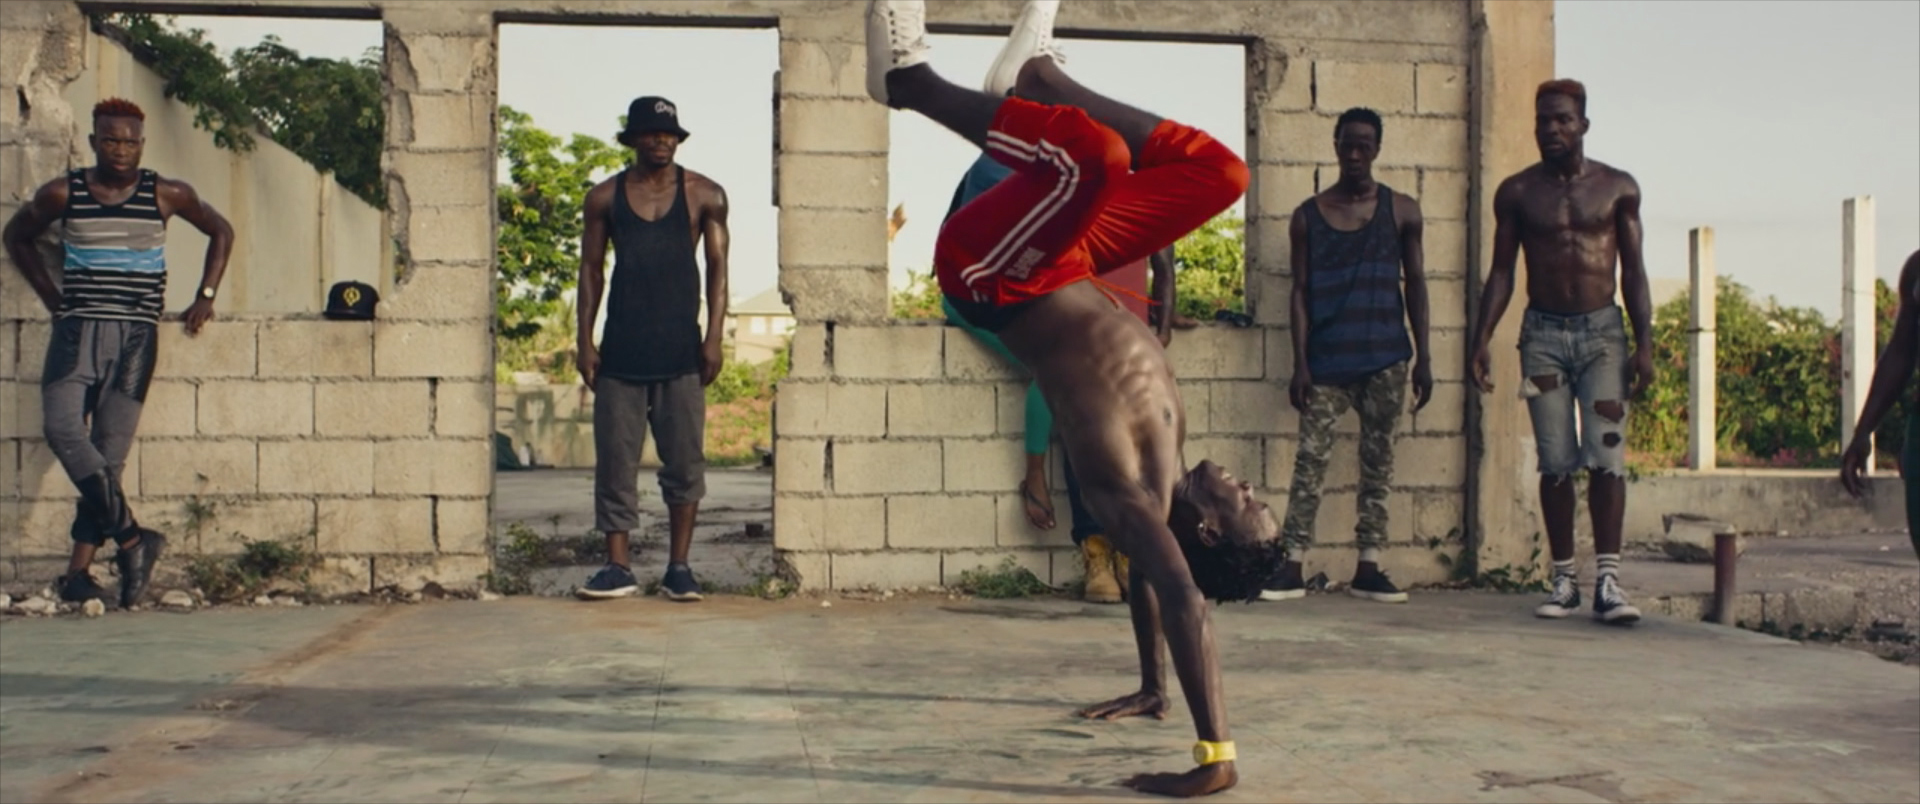 image King of the Dancehall Watch Full Movie Free Online